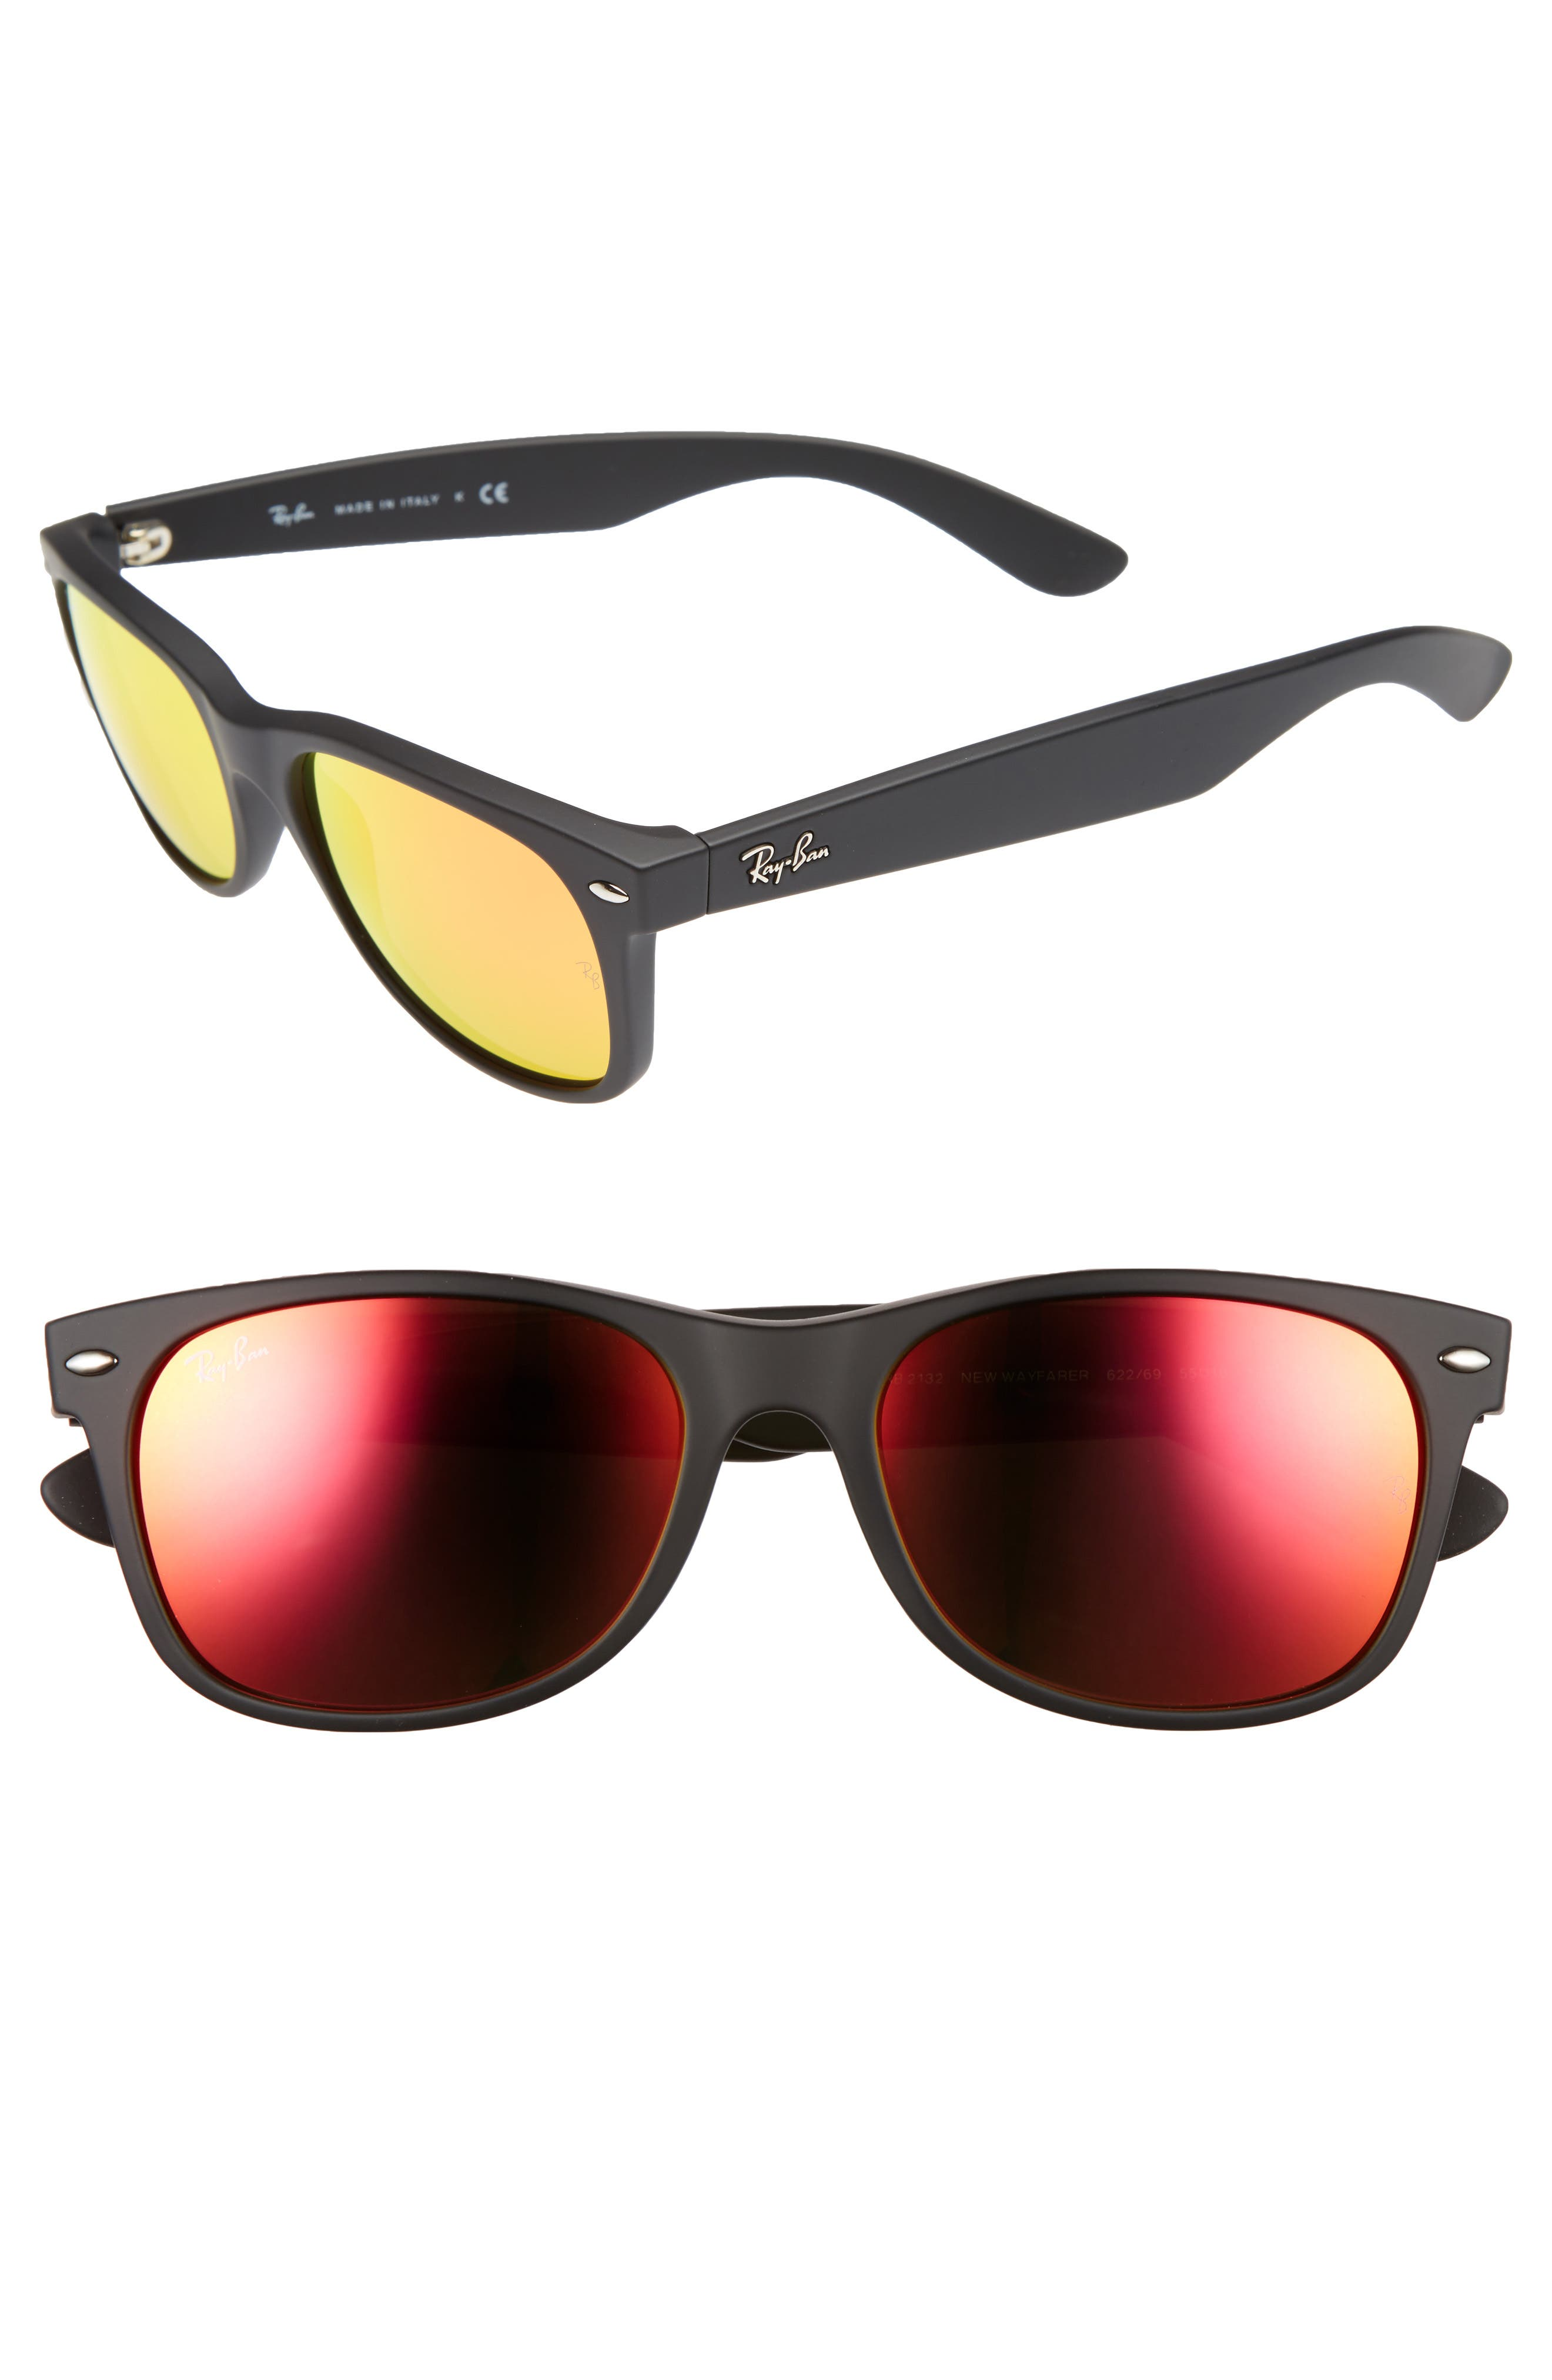 Ray-Ban 2132 55Mm Sunglasses - Black/ Brown Mirror Red